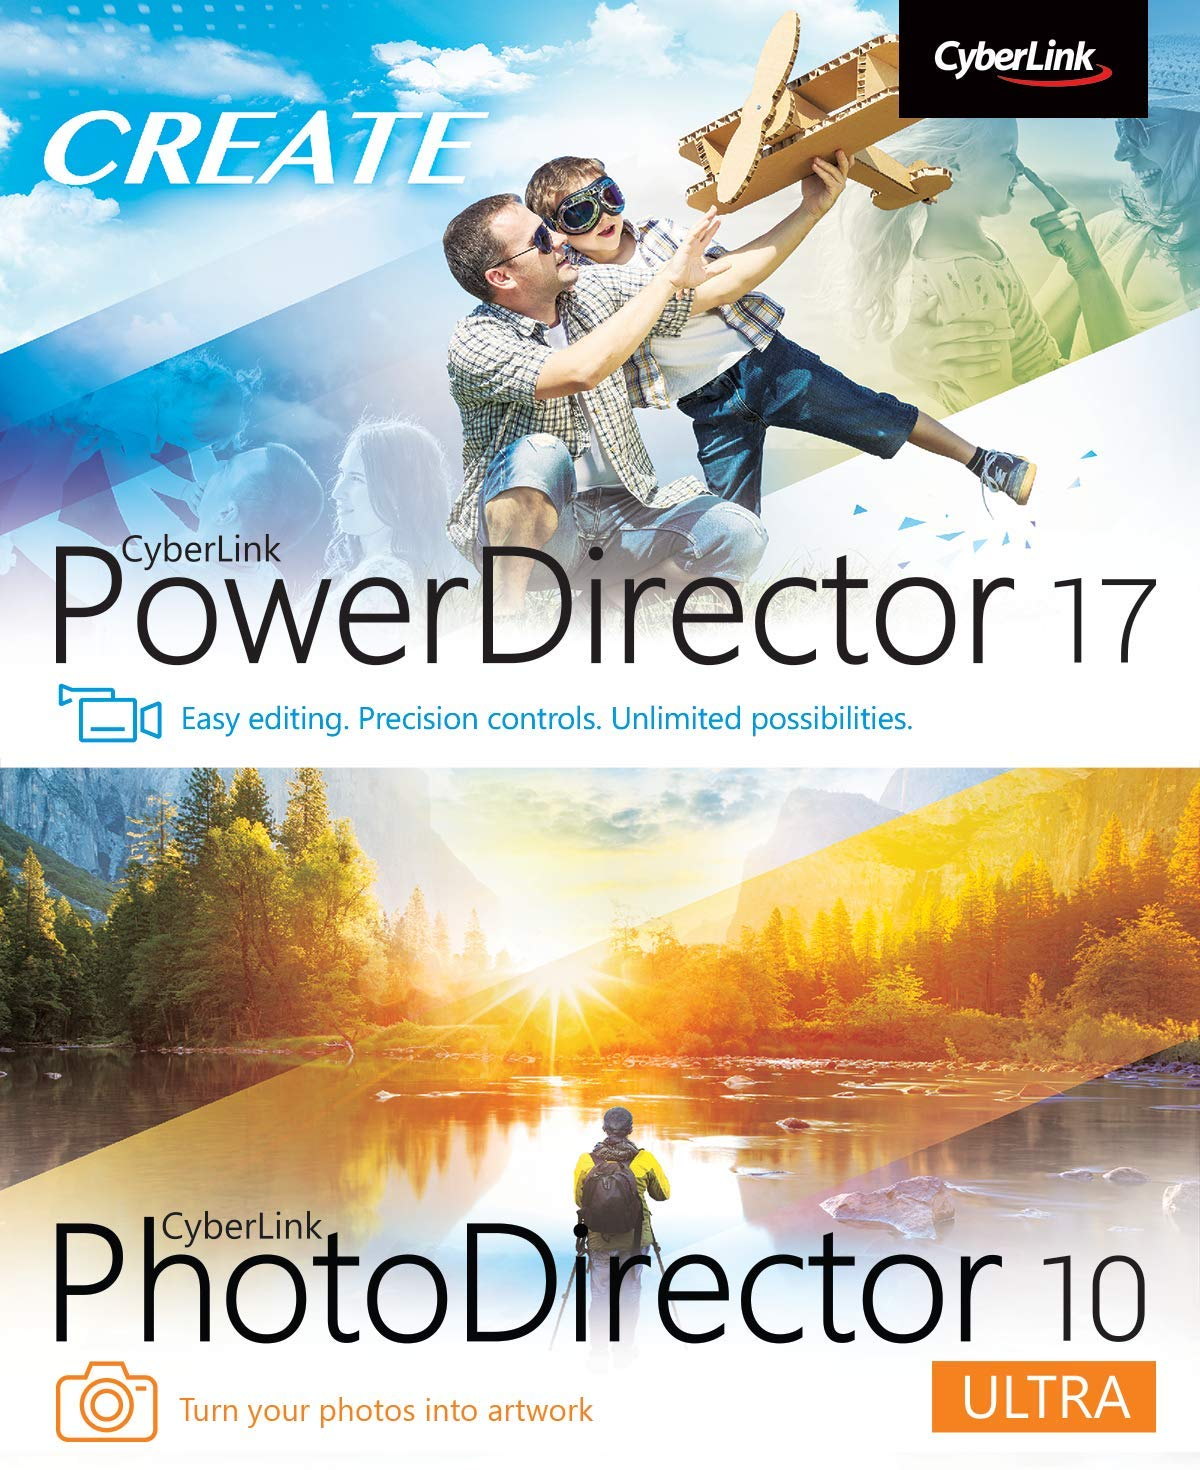 Cyberlink PowerDirector 17 and PhotoDirector 10 Ultra [PC Download] by Cyberlink